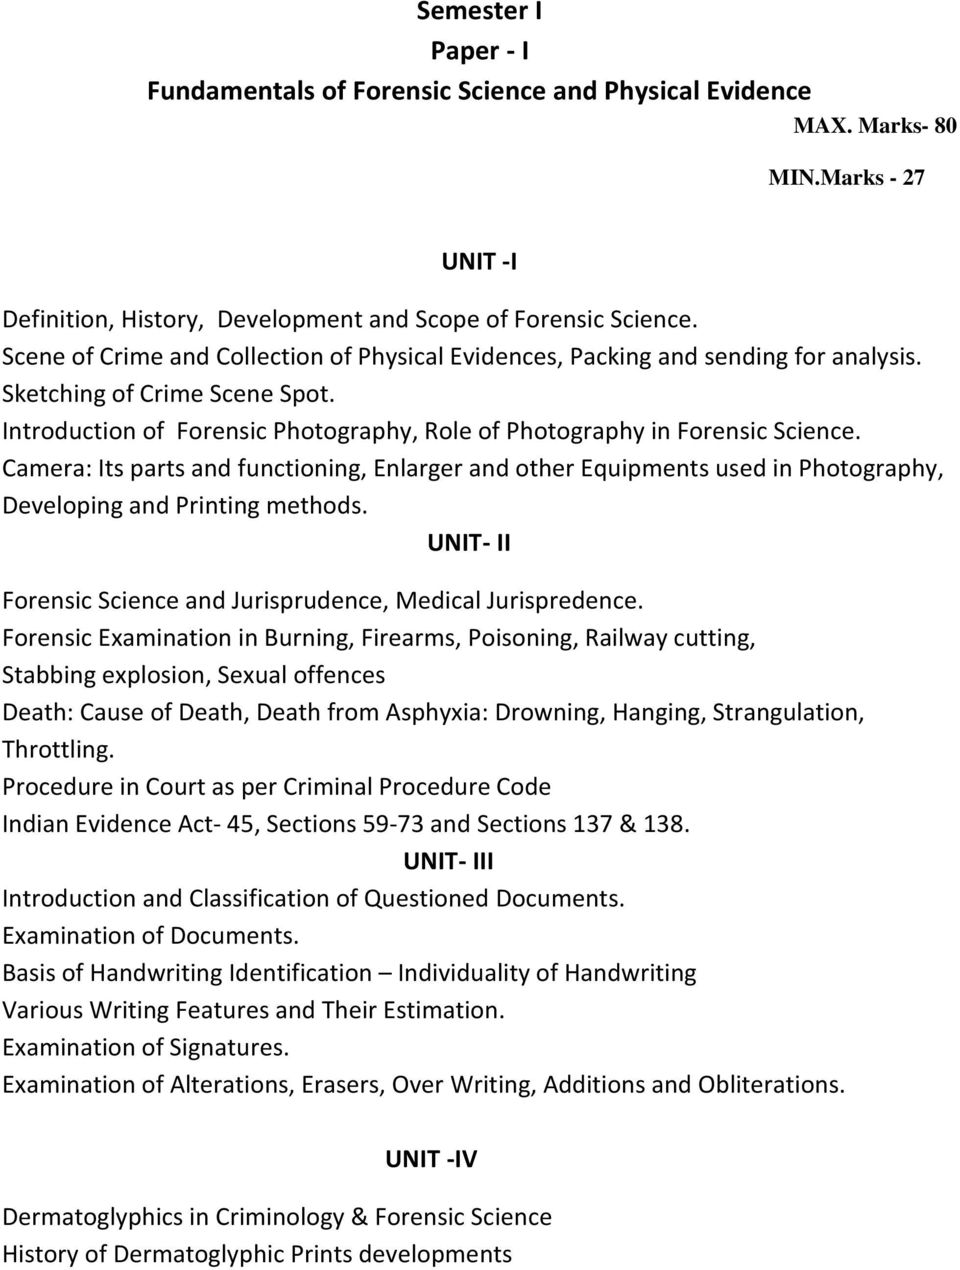 P G Diploma In Criminology And Forensic Science Semester I Pdf Free Download